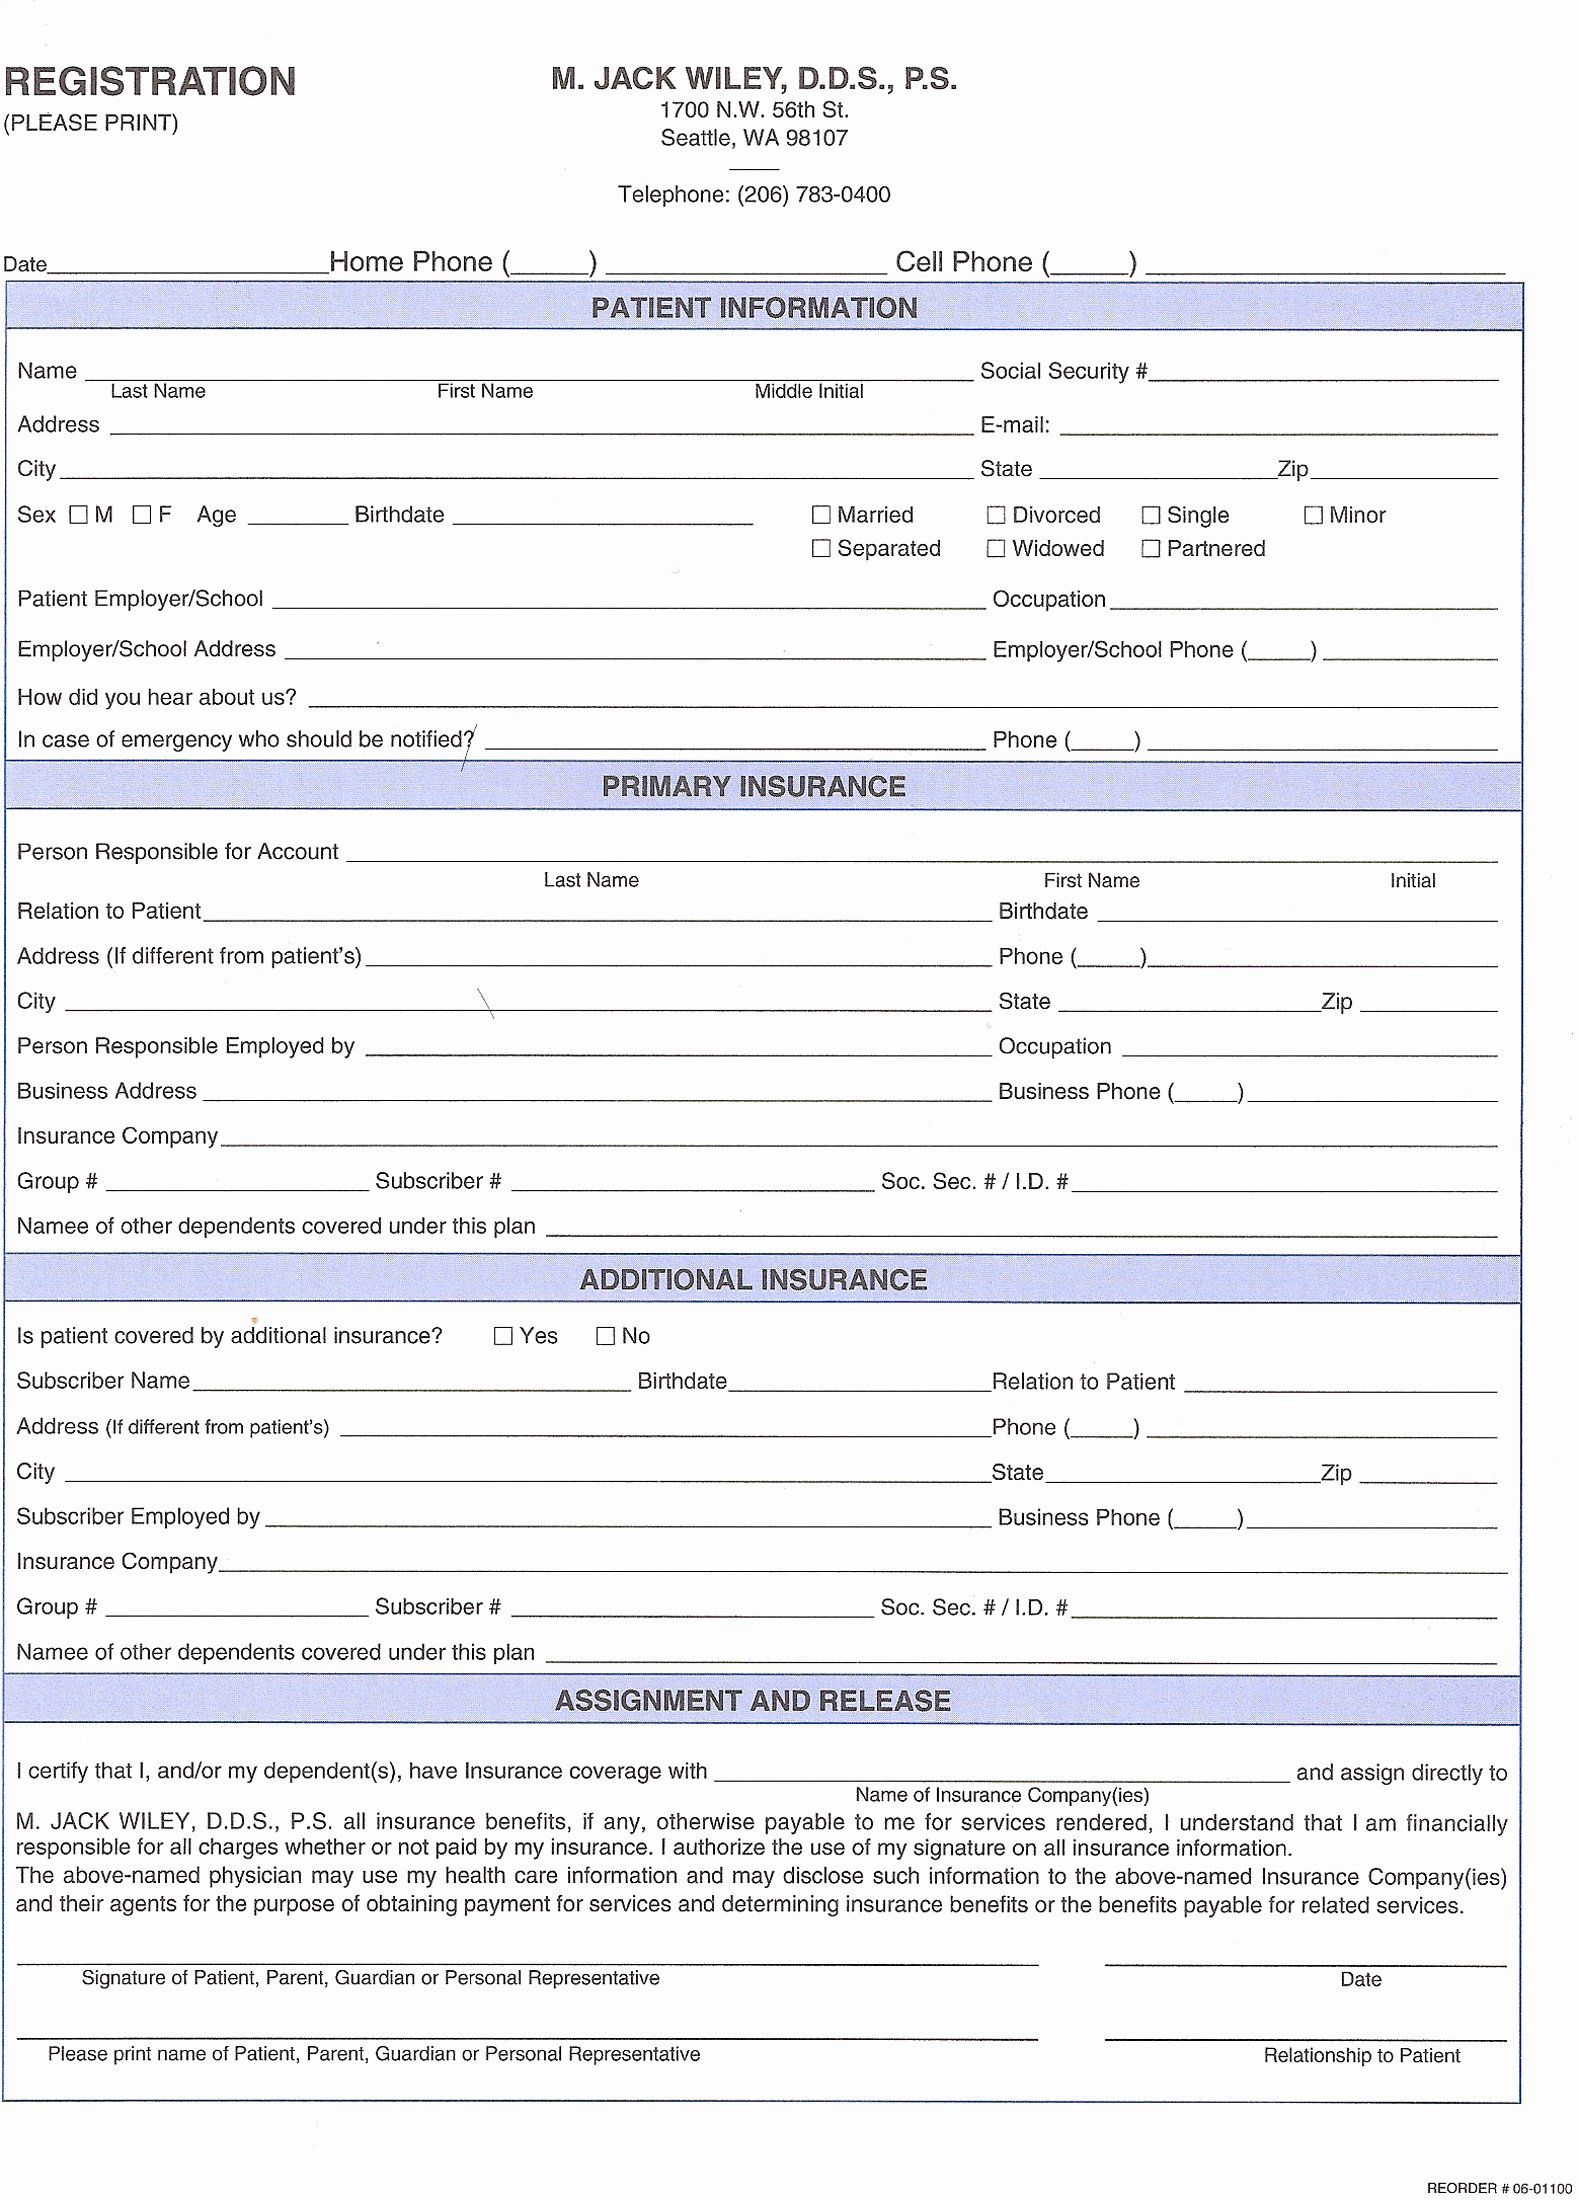 New Patient Registration form Template Beautiful 27 Of Dental New Patient forms Template